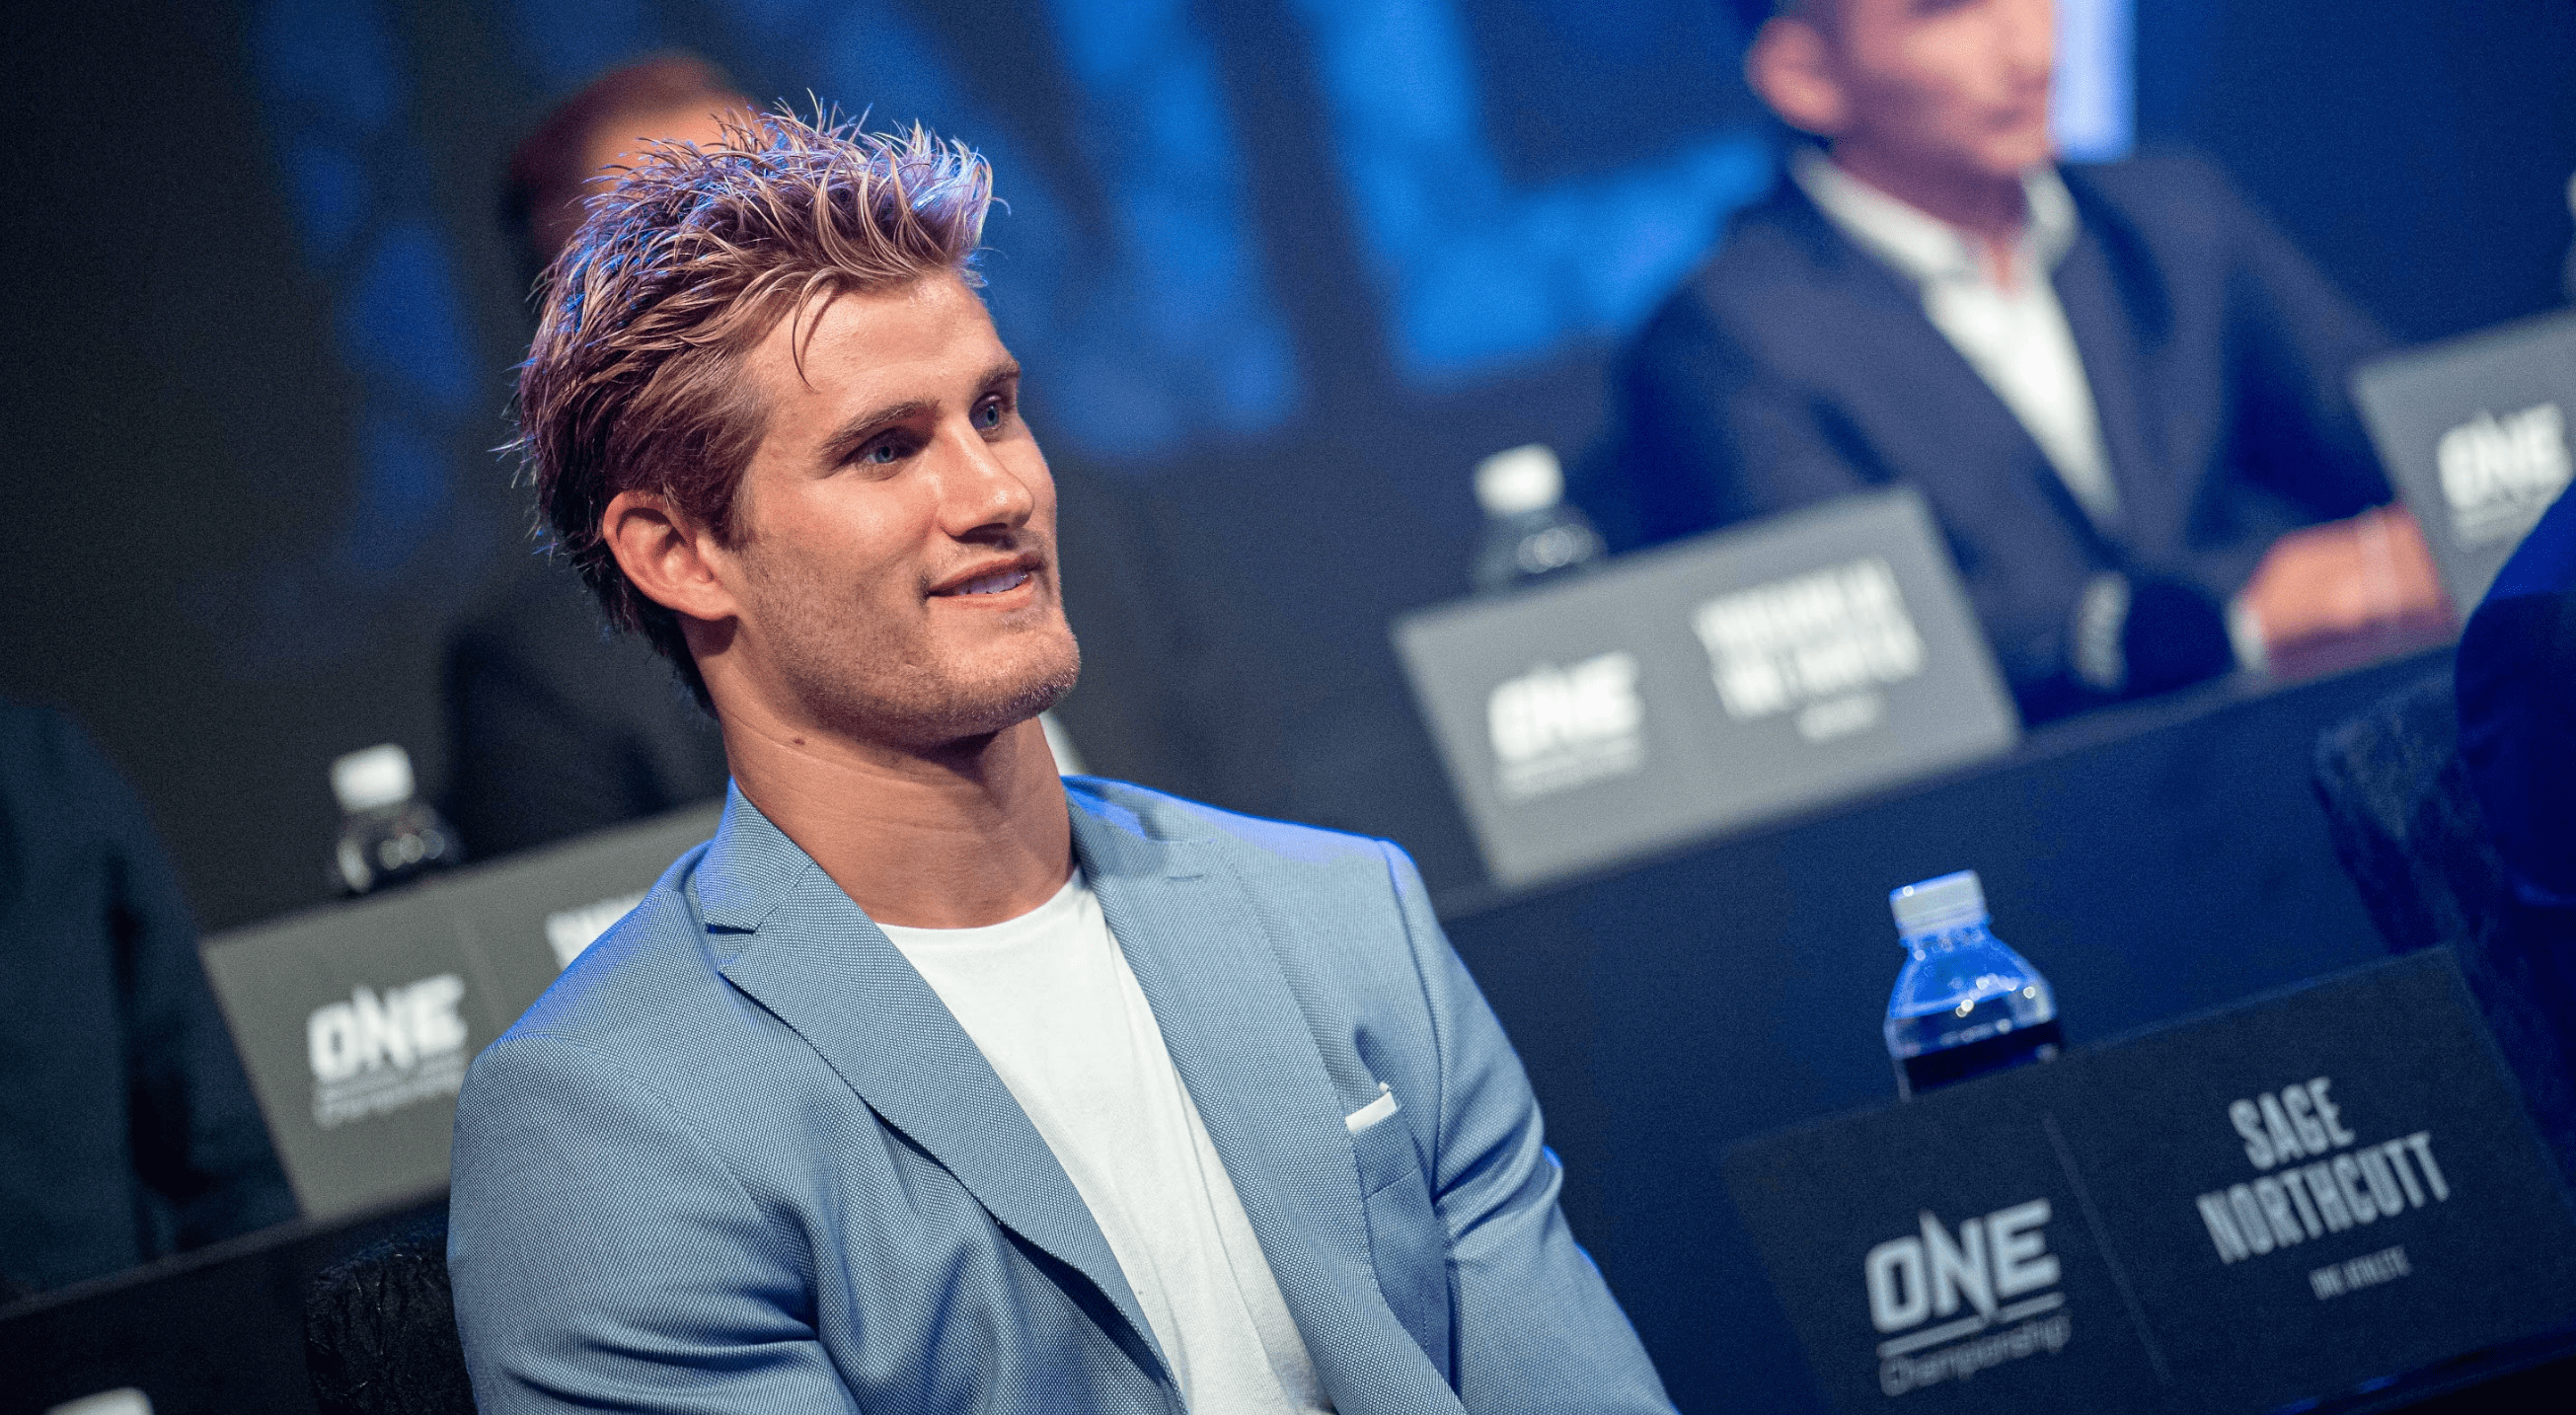 Sage Northcutt Can't Wait To Return To The ONE Circle